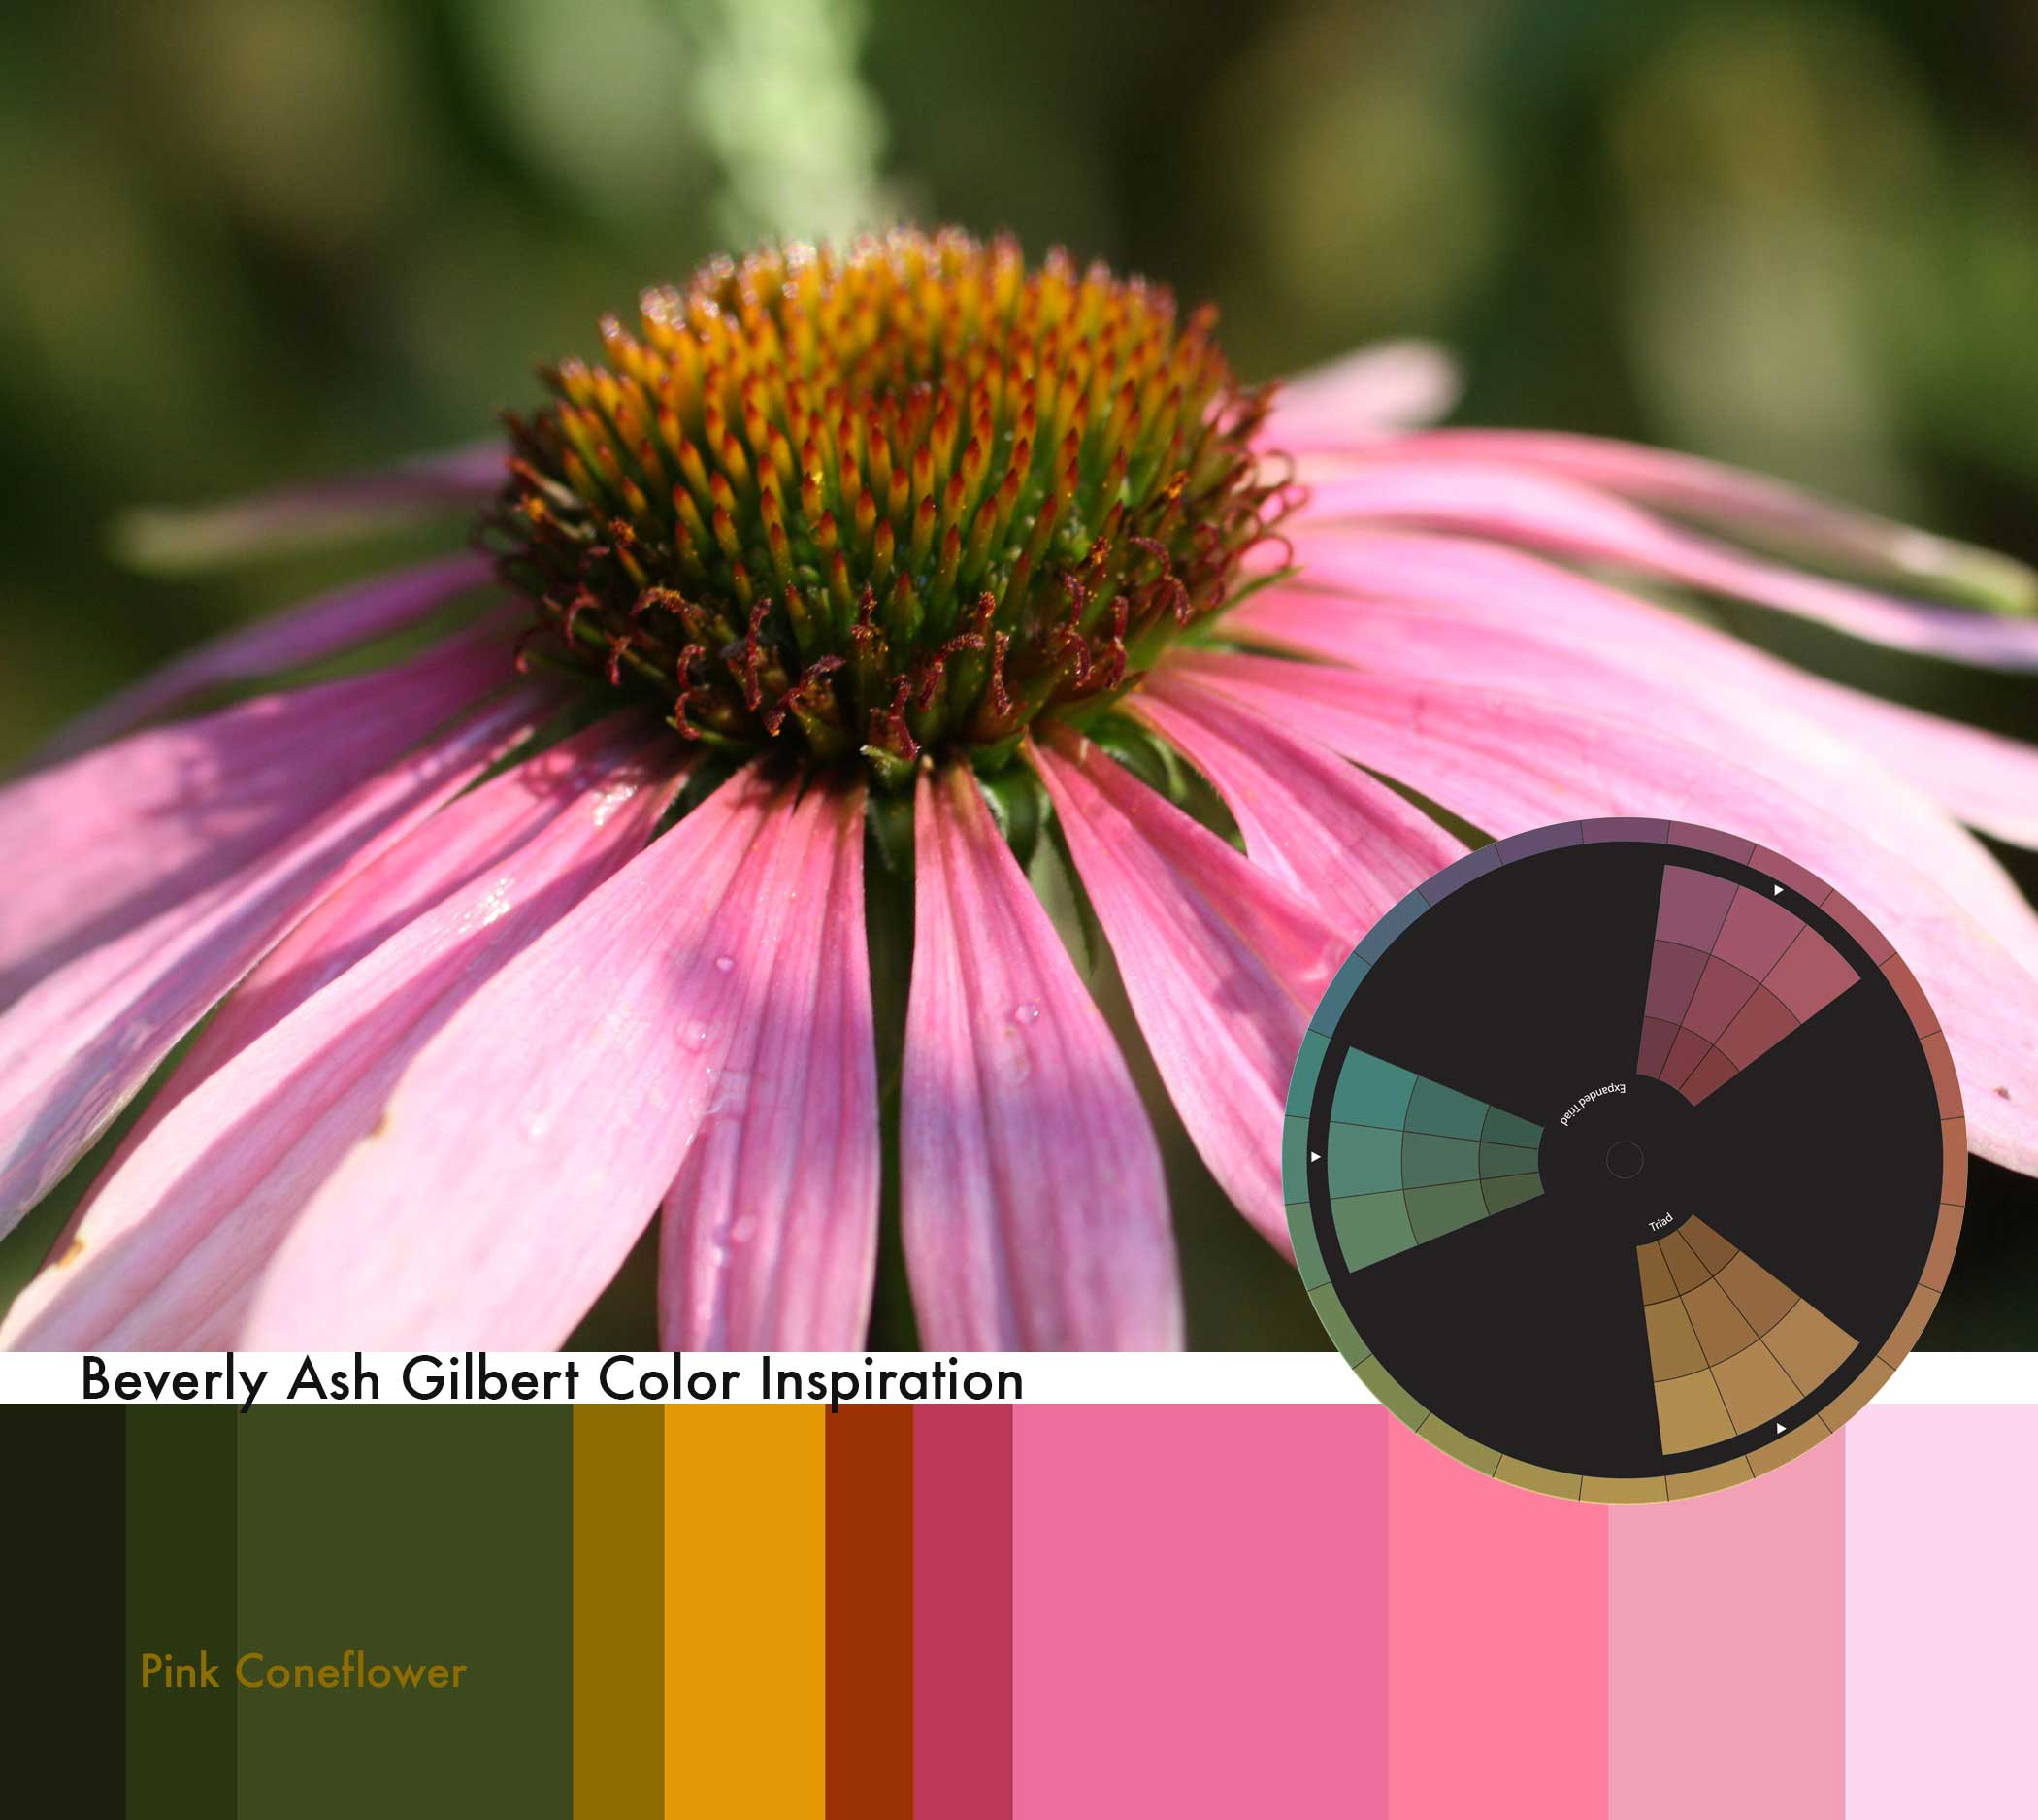 ColorInspiration_PinkConeflower.jpg